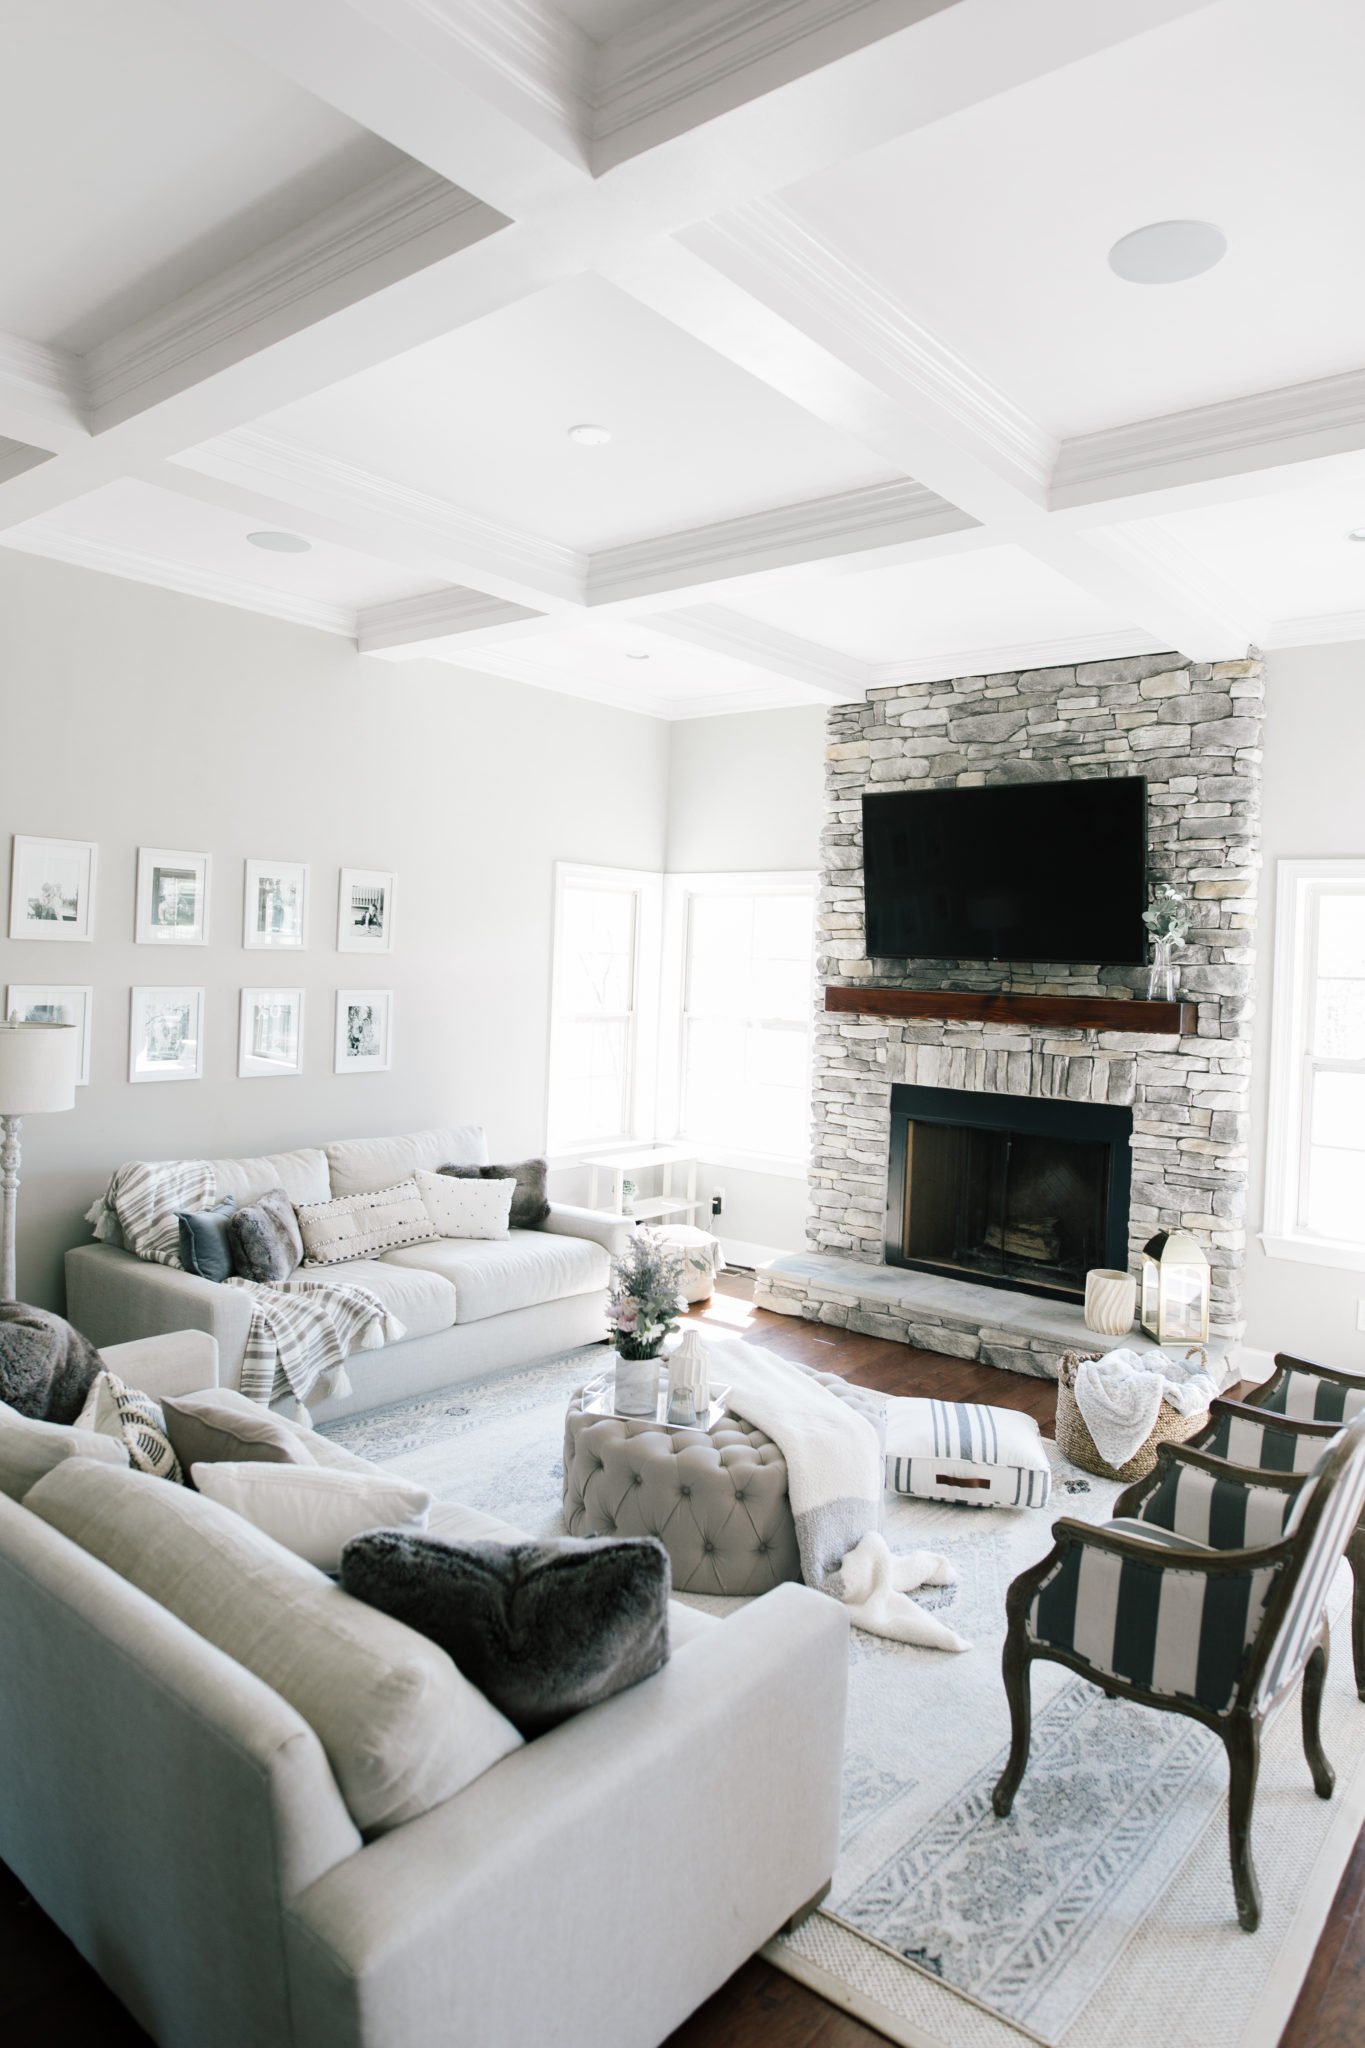 Home Decor: Neutral Living Room - Beaus and Ashley on Room Decor Pictures  id=65596